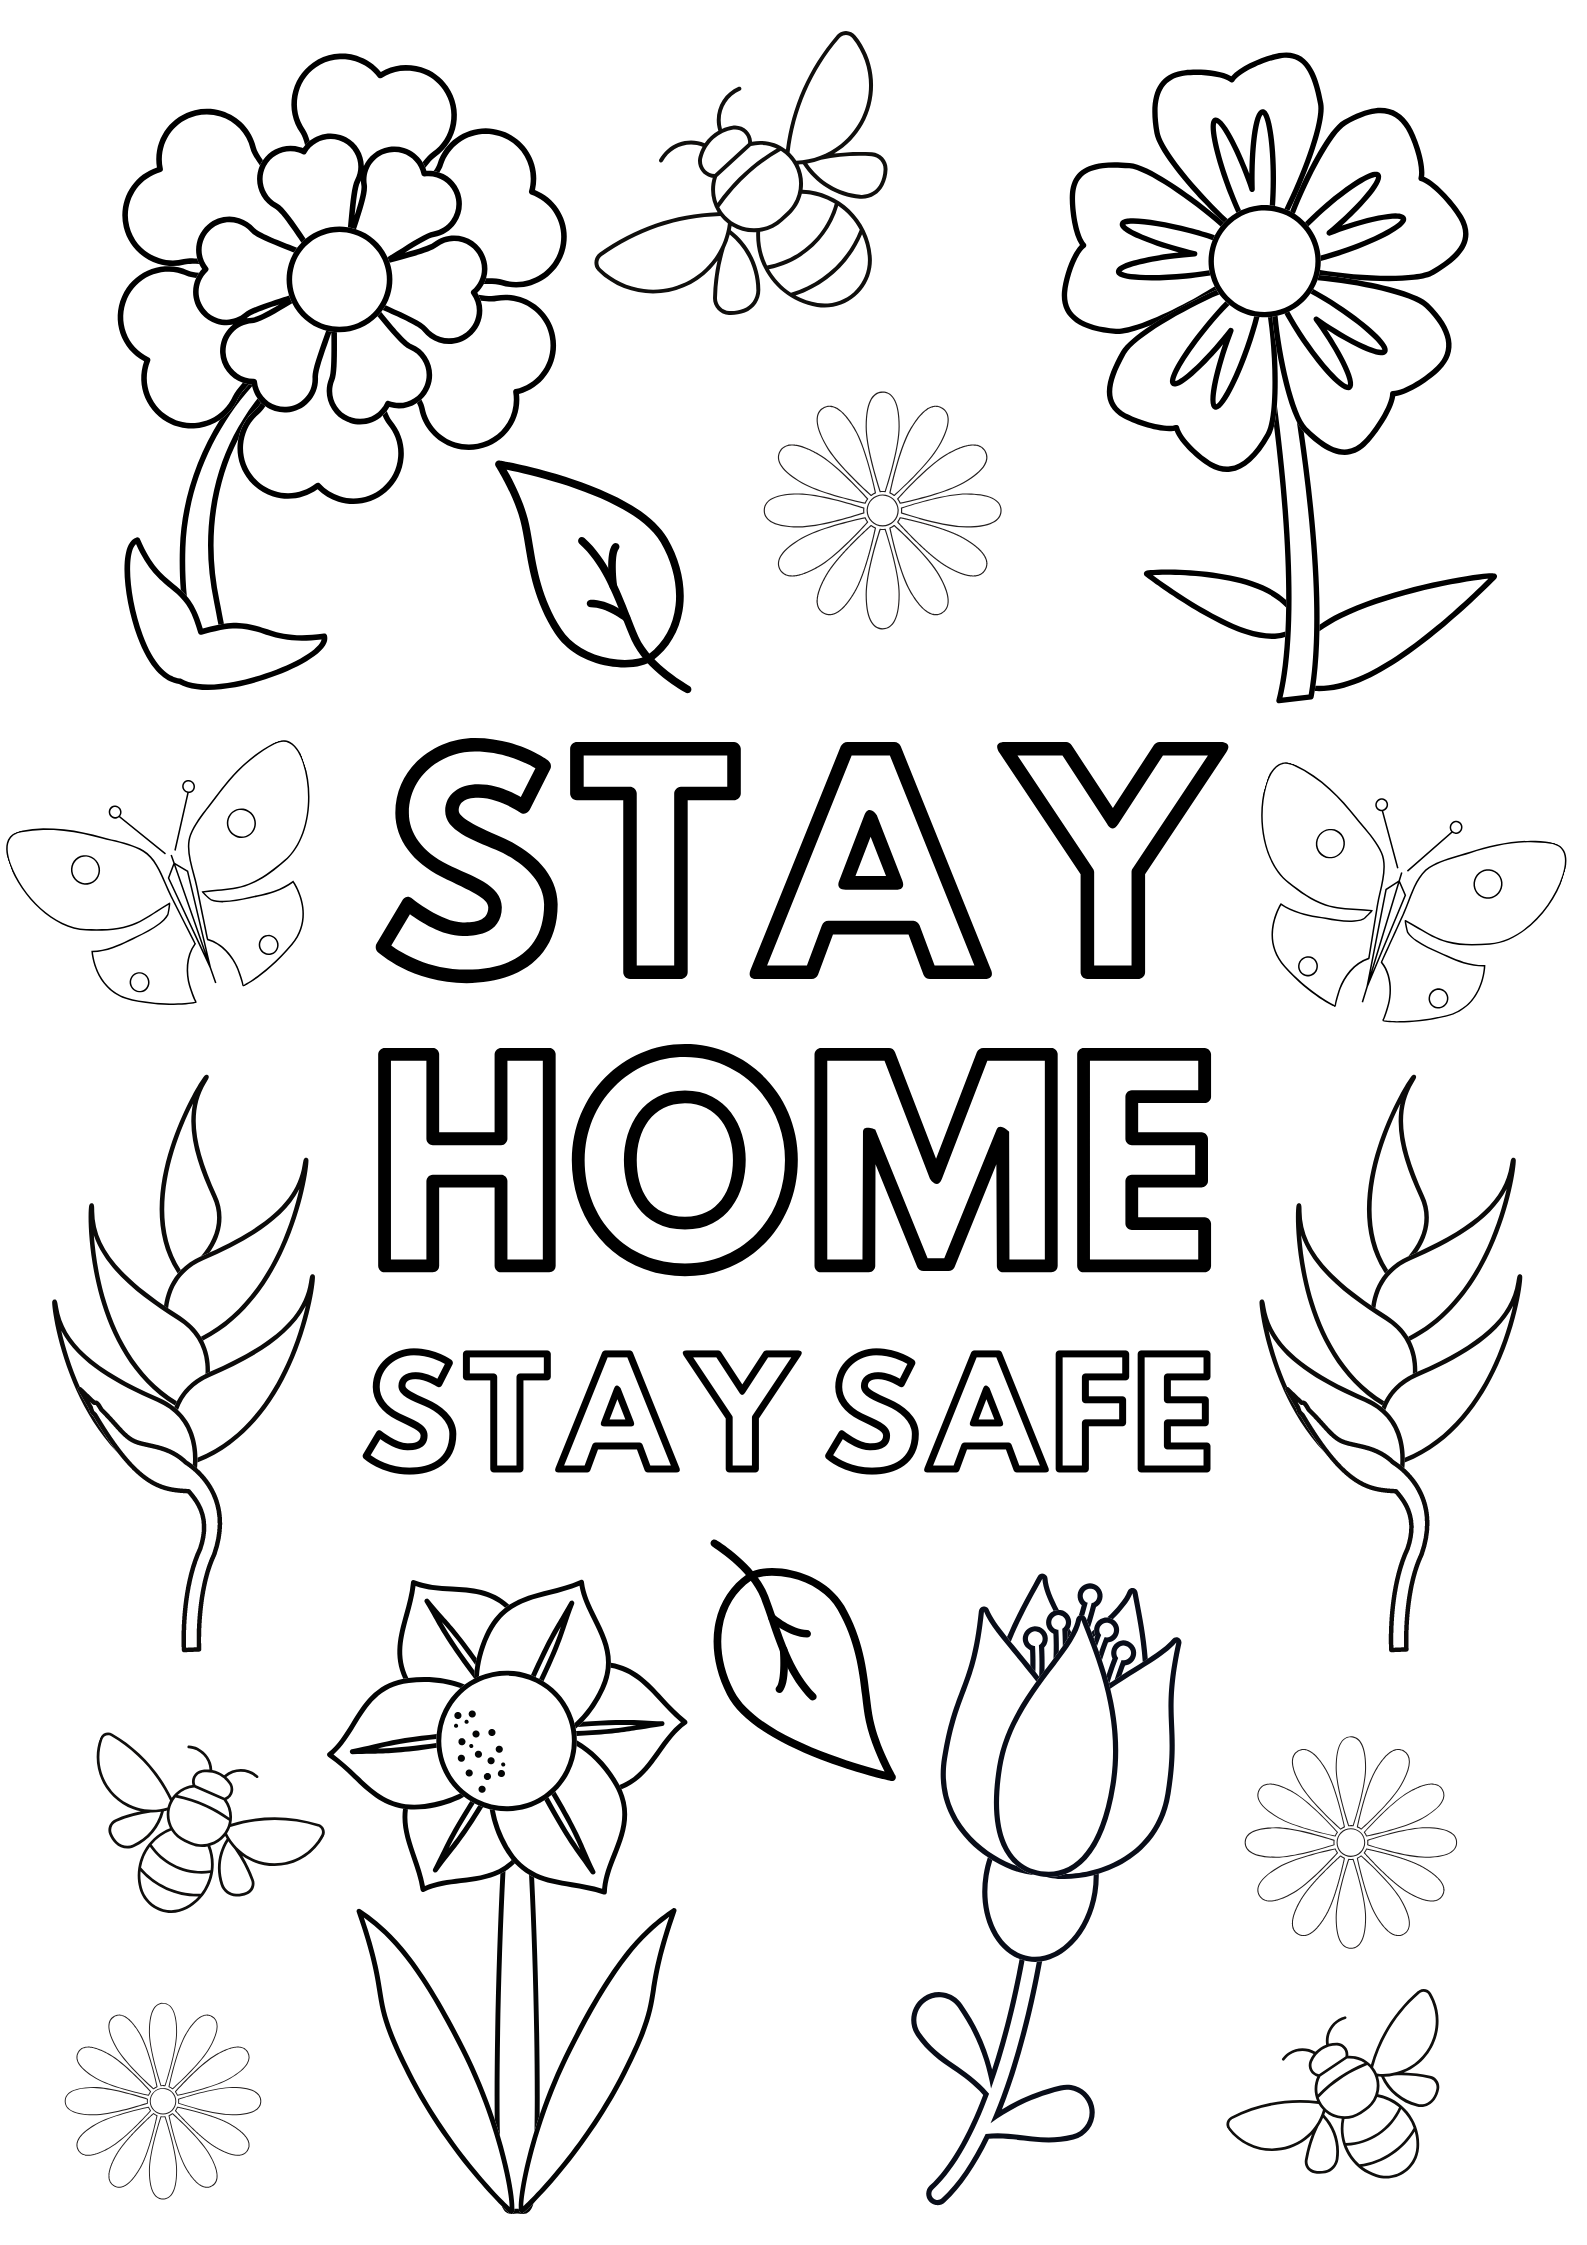 Free Colouring Pages Digital Motherhood Kids Printable Coloring Pages Free Coloring Pages Coloring Pages